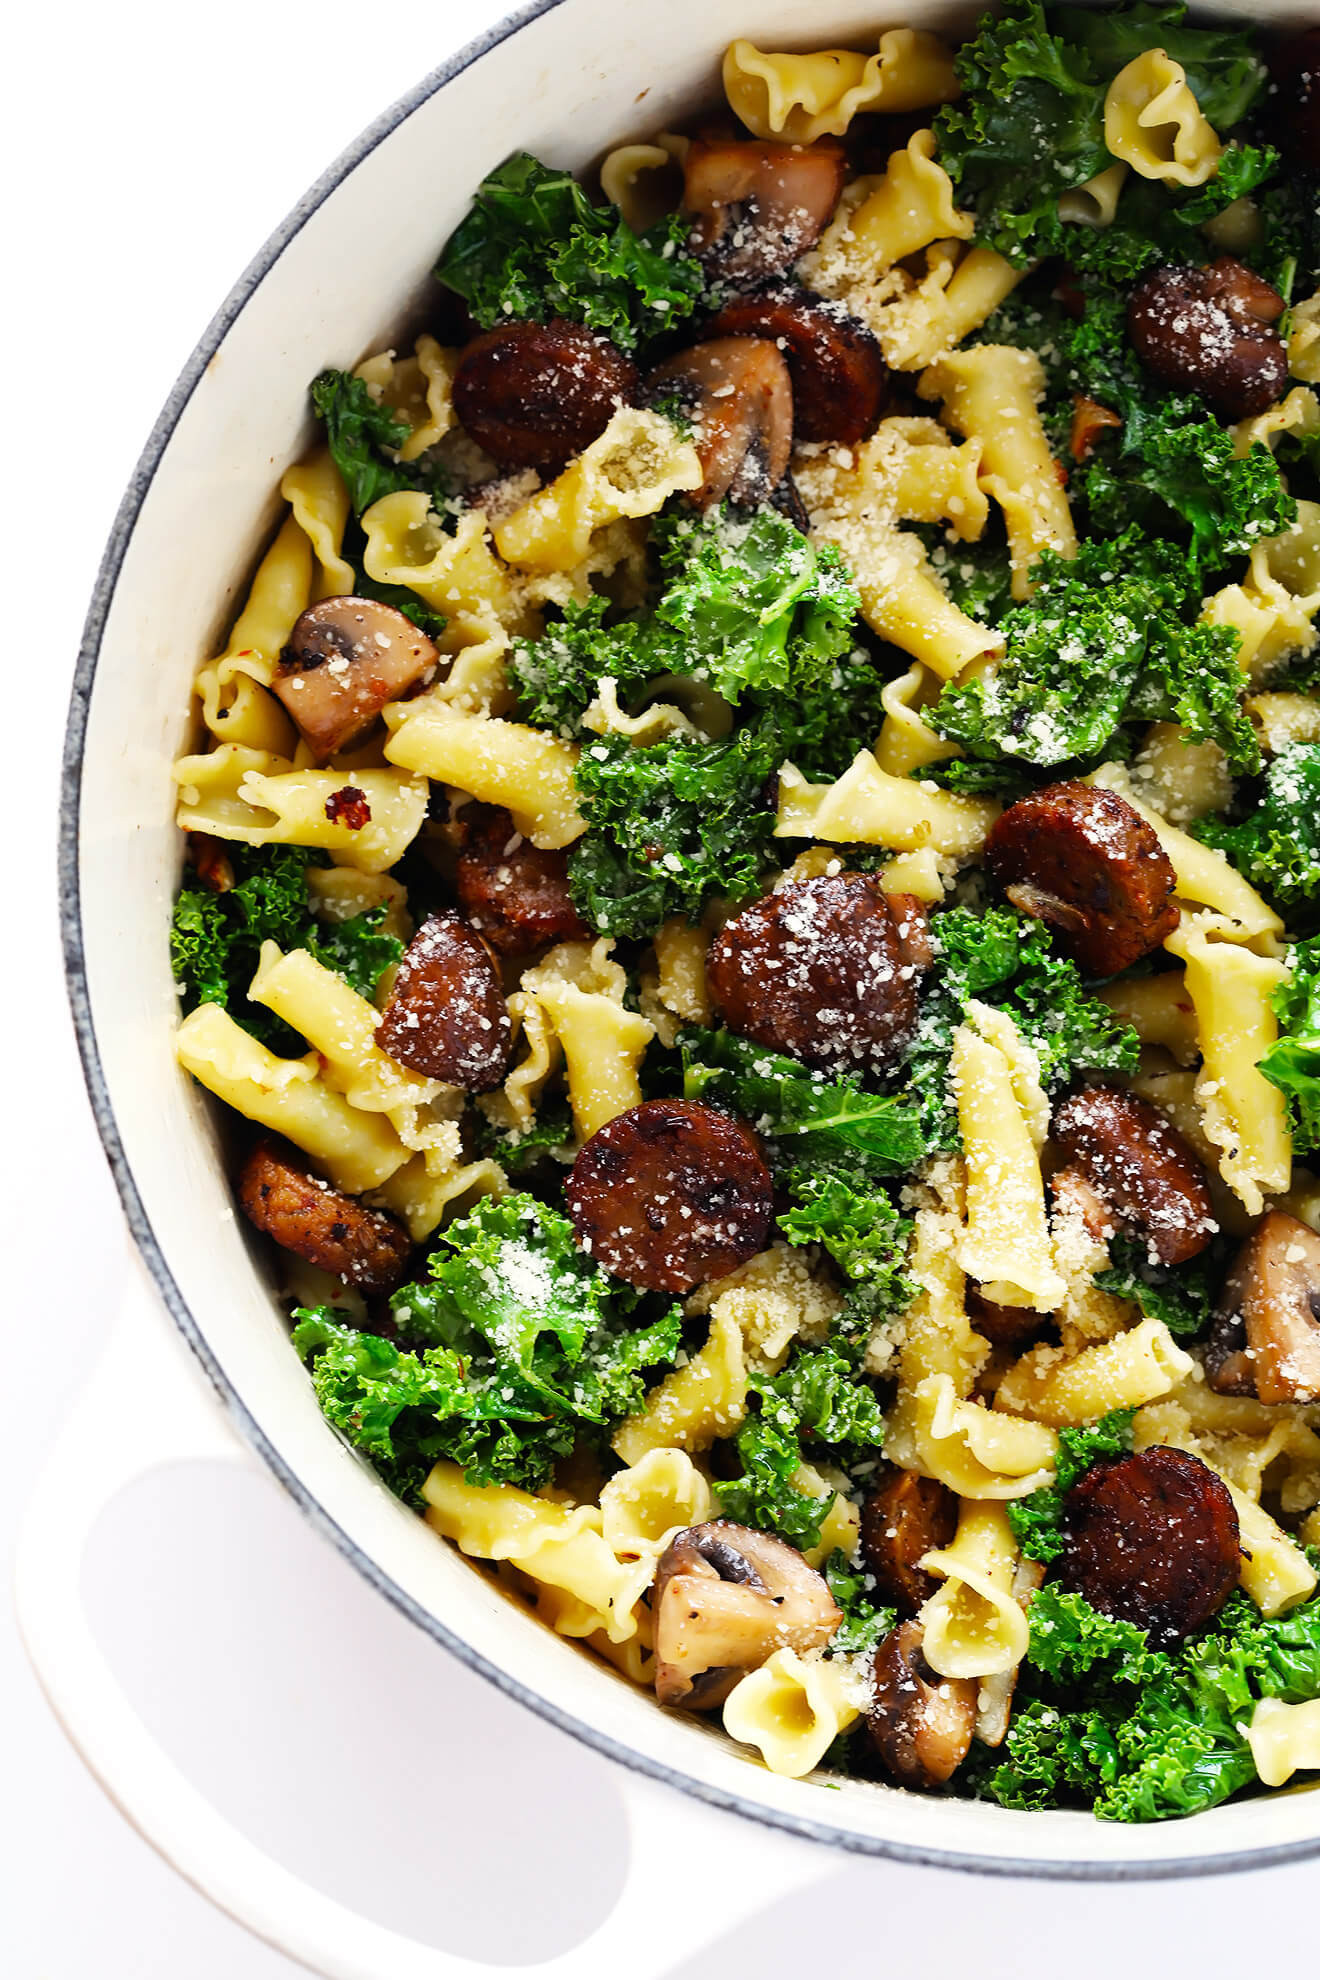 Italian Sausage Pasta Recipes  Pasta with Italian Sausage Kale and Mushrooms